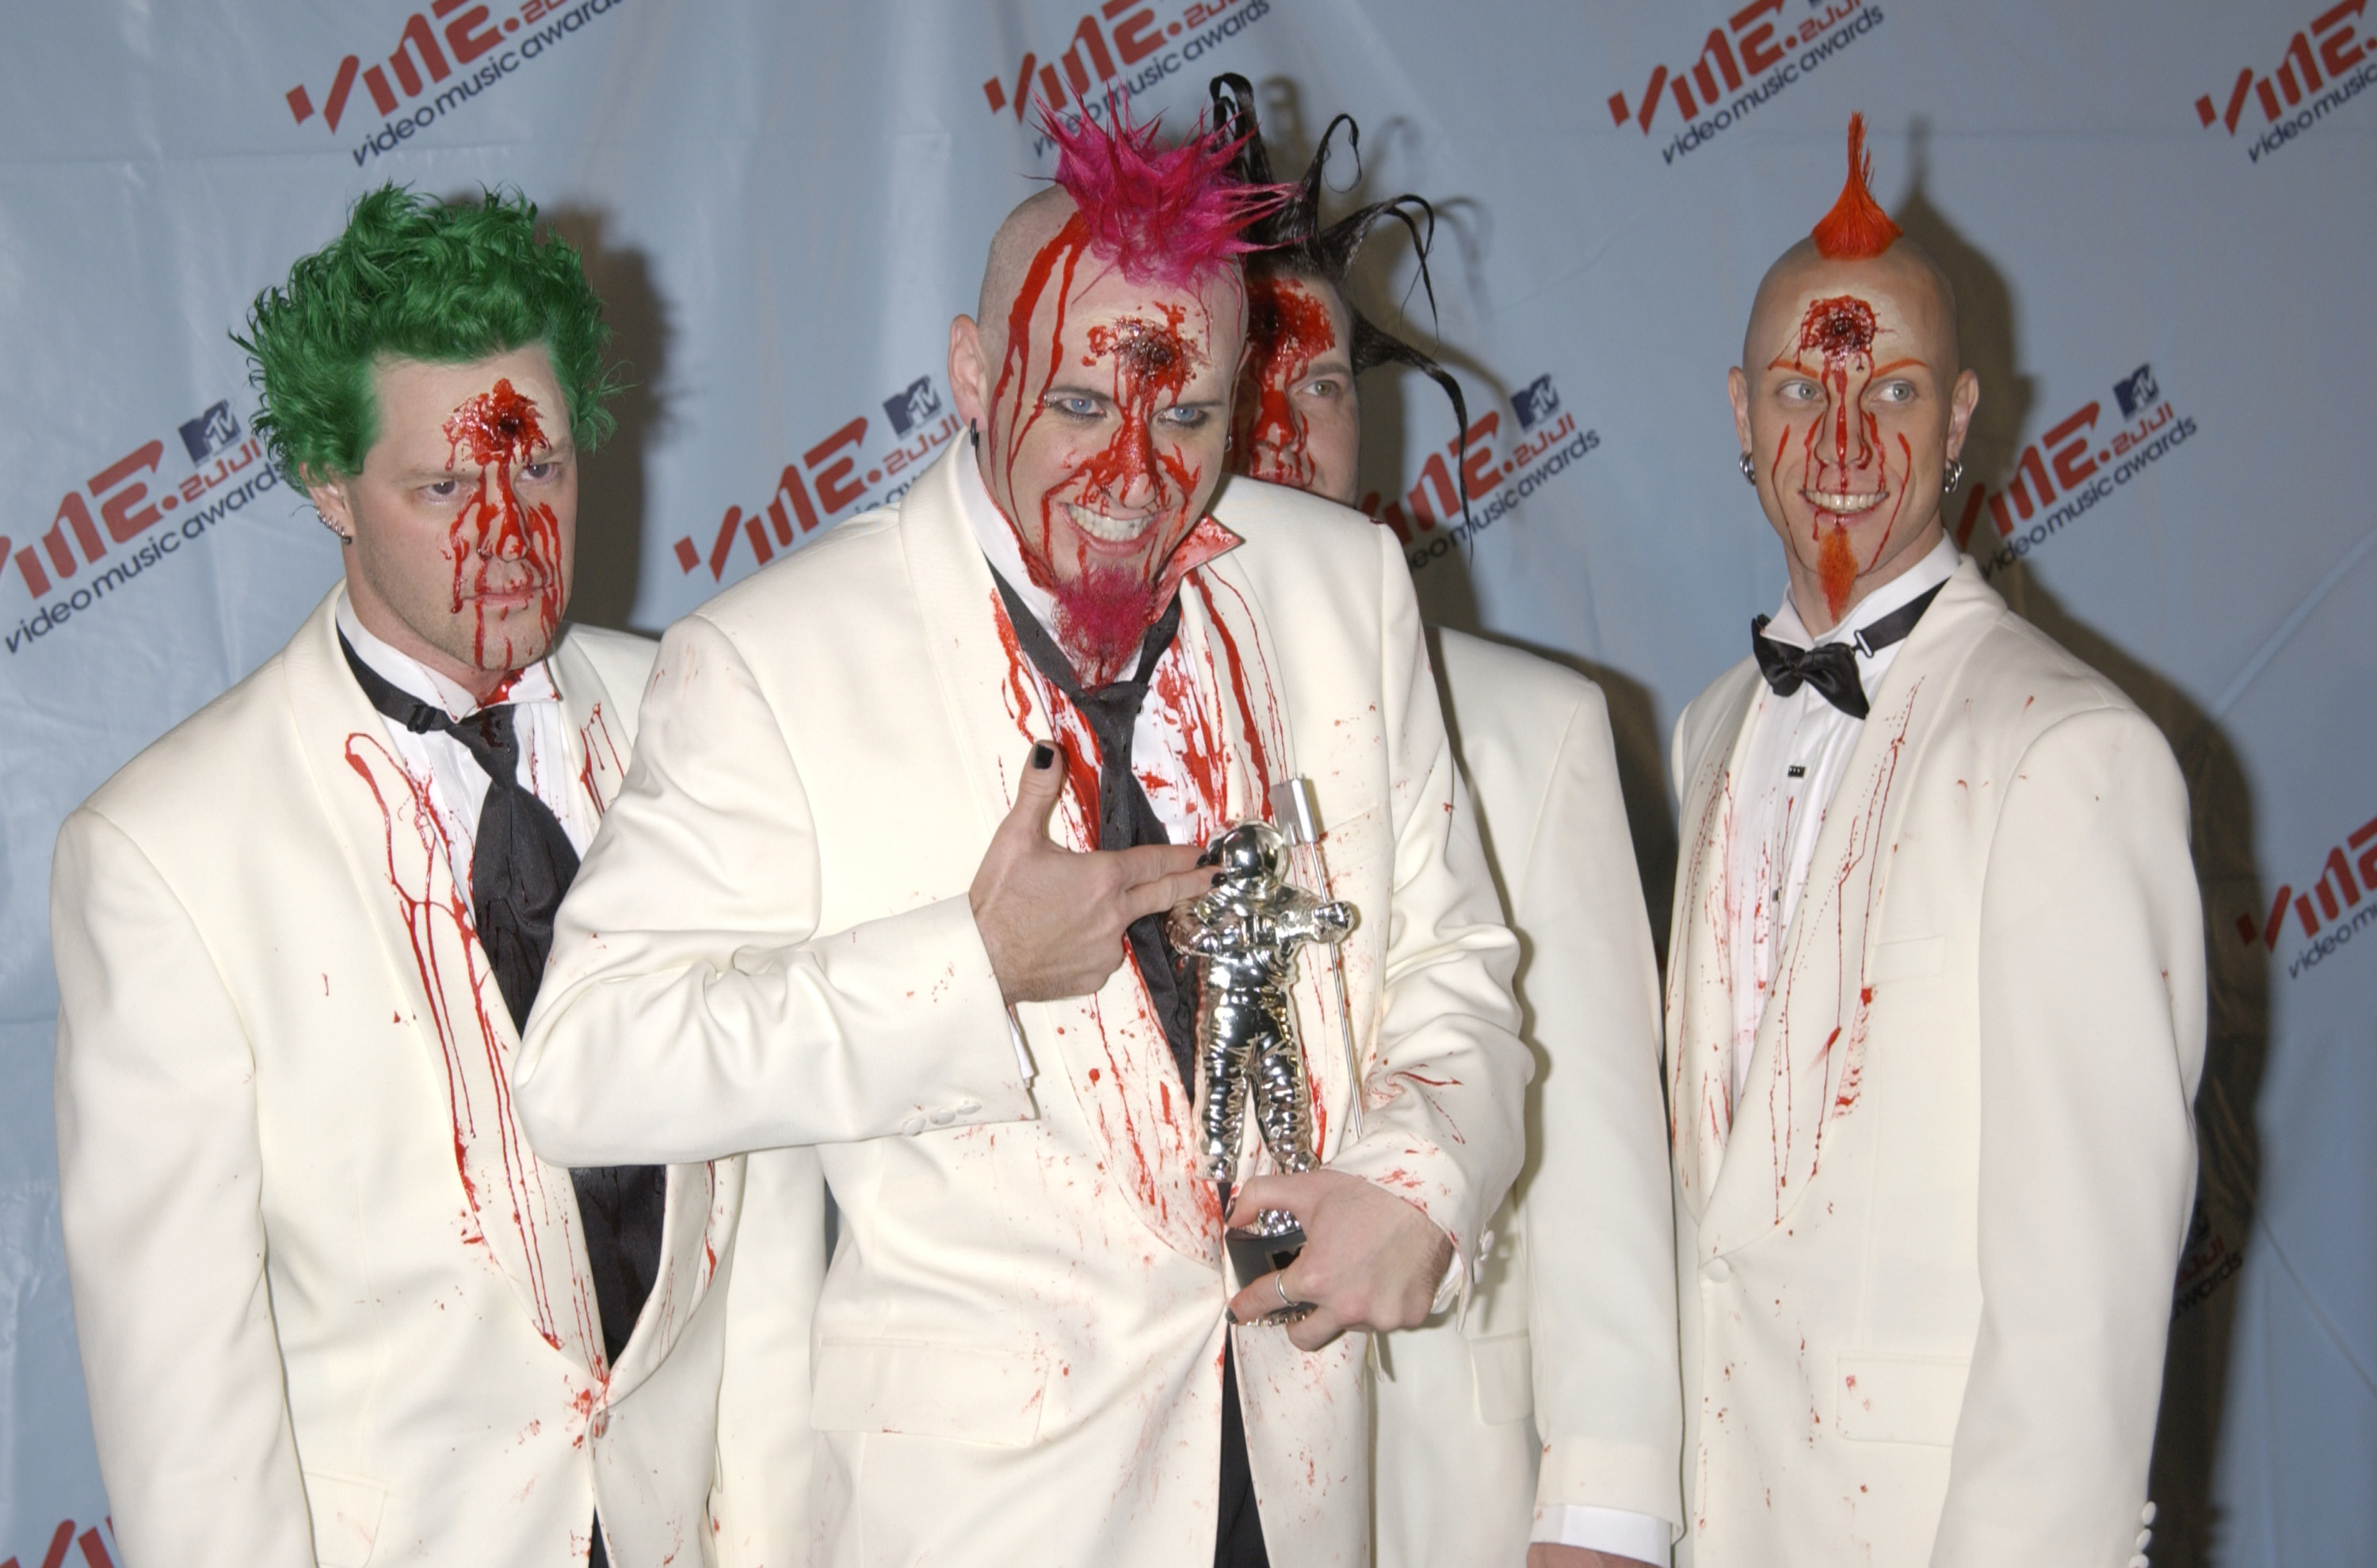 How The Hell Did Mudvayne Ever Win A Vma Stereogum